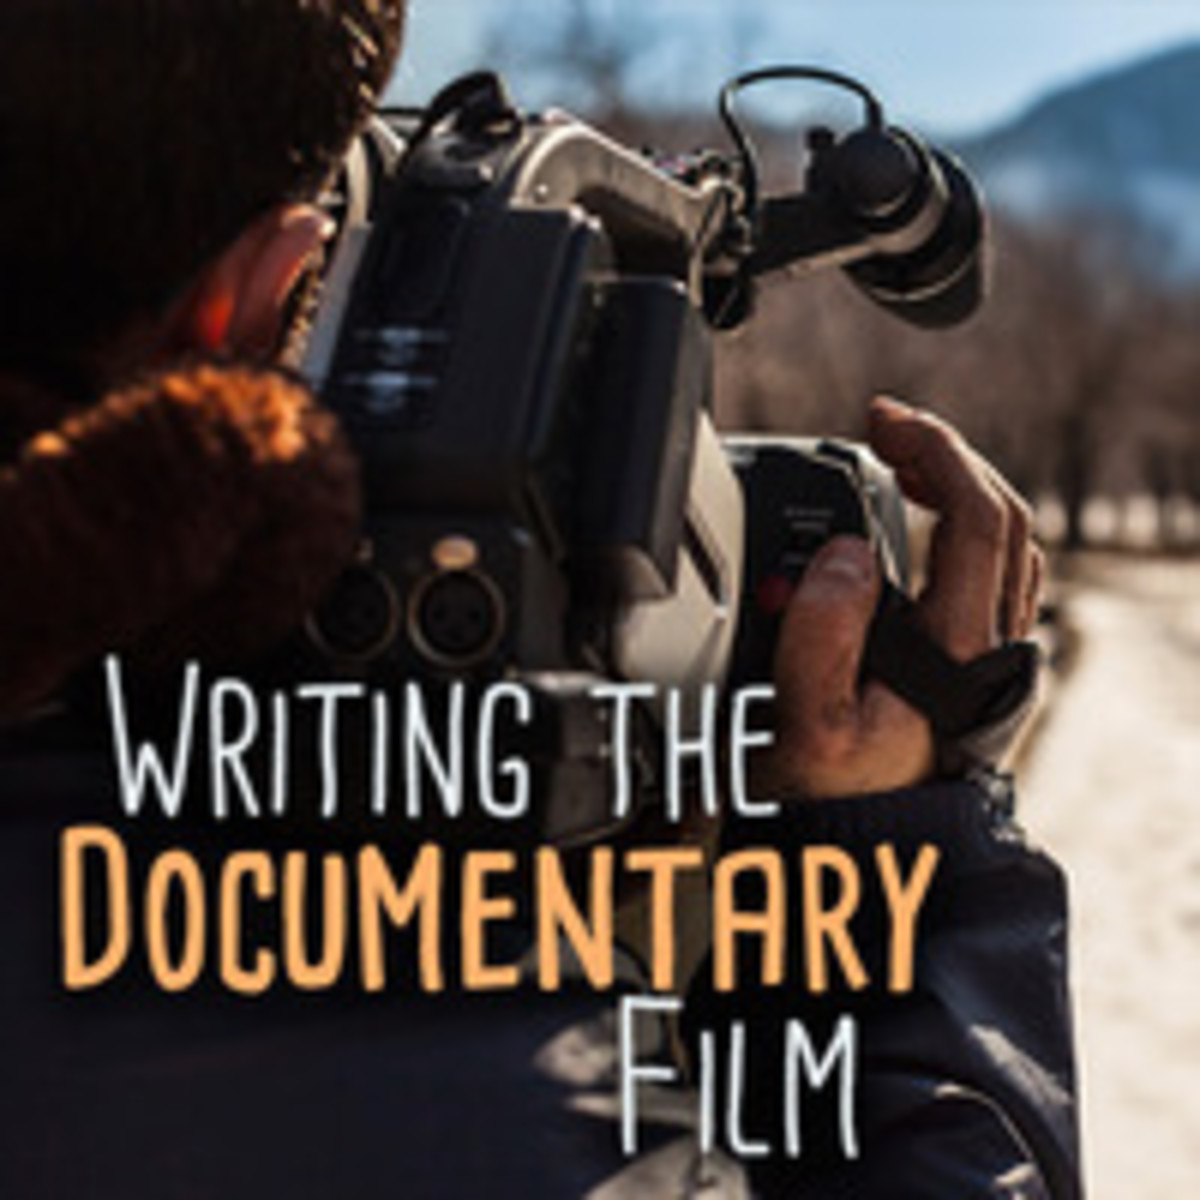 Writing the Documentary Film